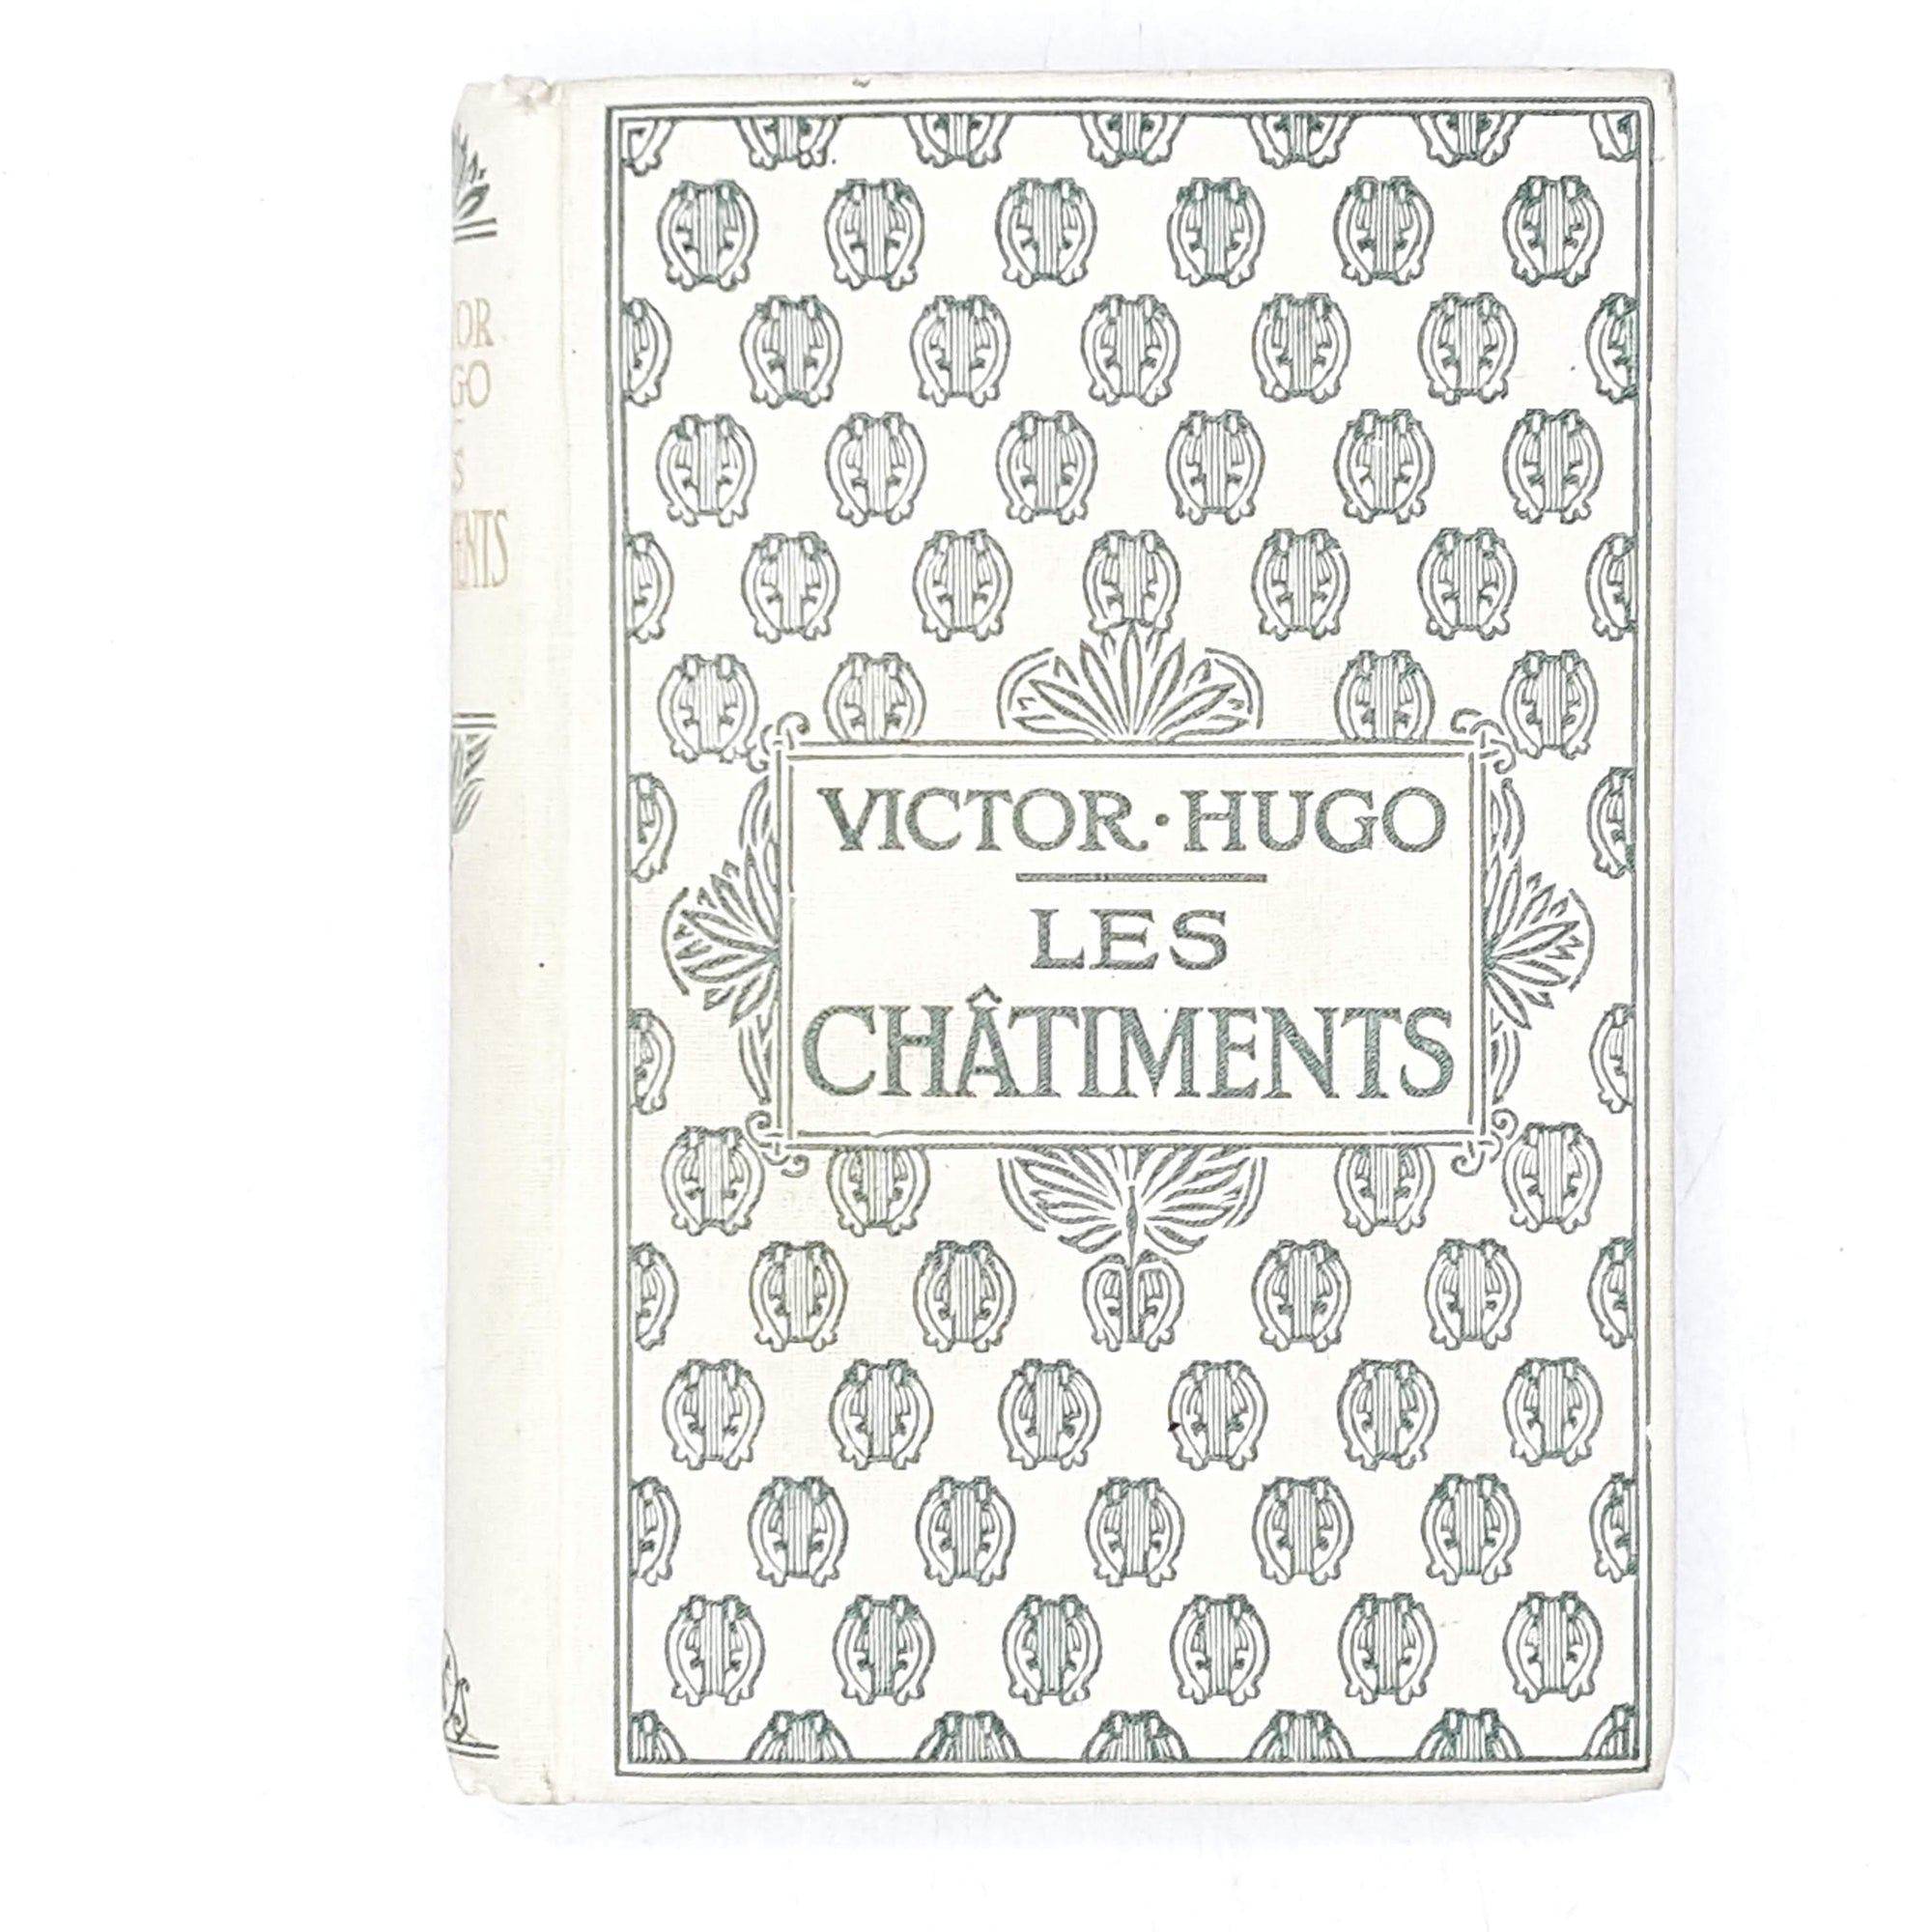 Vintage French Literature: Les Châtiments by Victor Hugo 1934